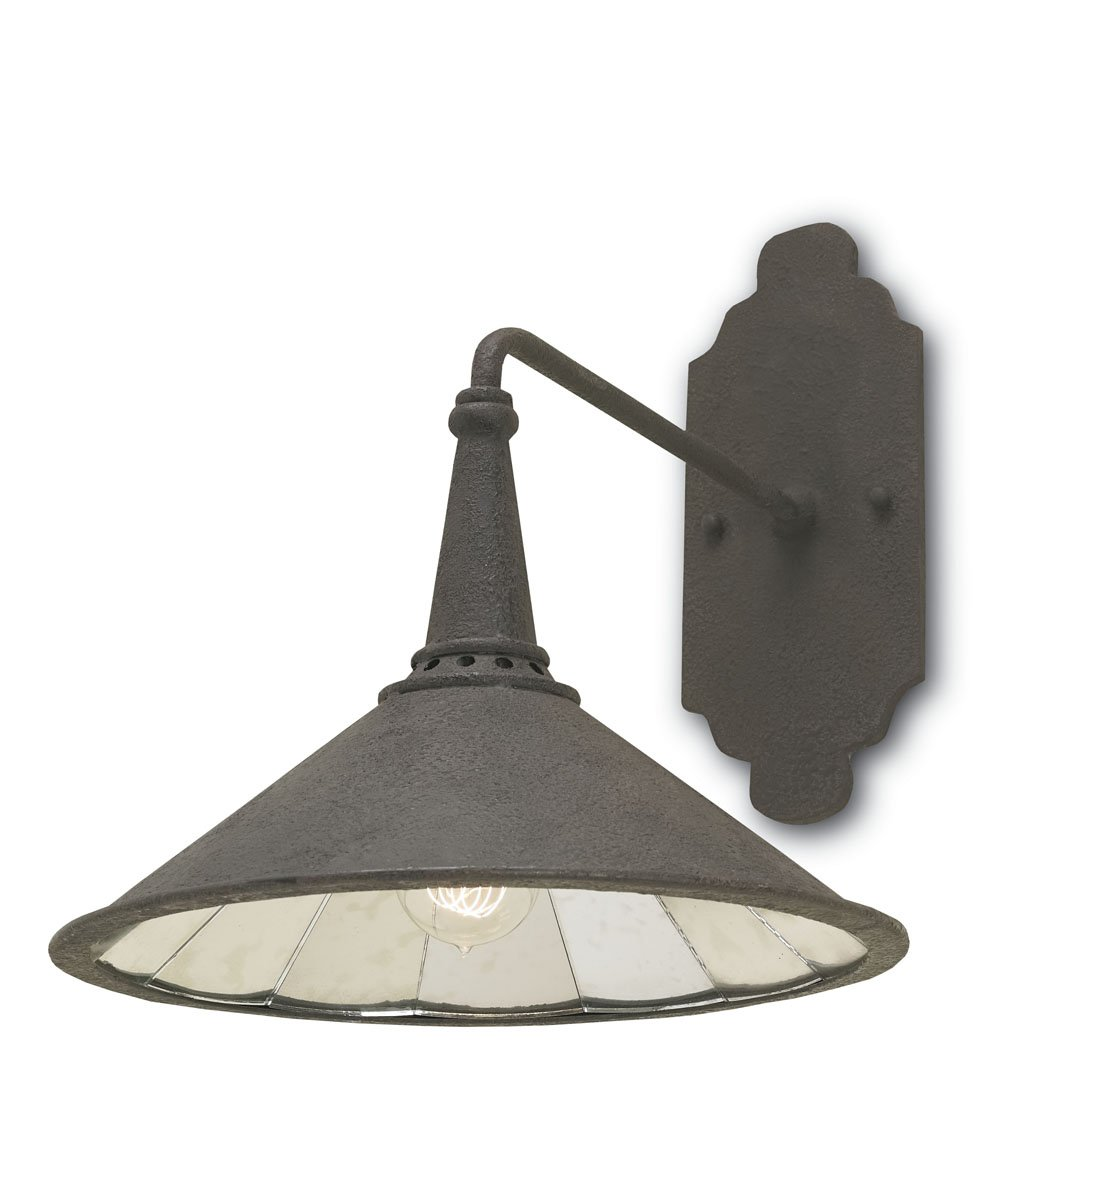 Currey and Company 5151 Manuscript - One Light Wall Sconce Mole Black/Antique Mirror Finish - - Amazon.com  sc 1 st  Amazon.com & Currey and Company 5151 Manuscript - One Light Wall Sconce Mole ...